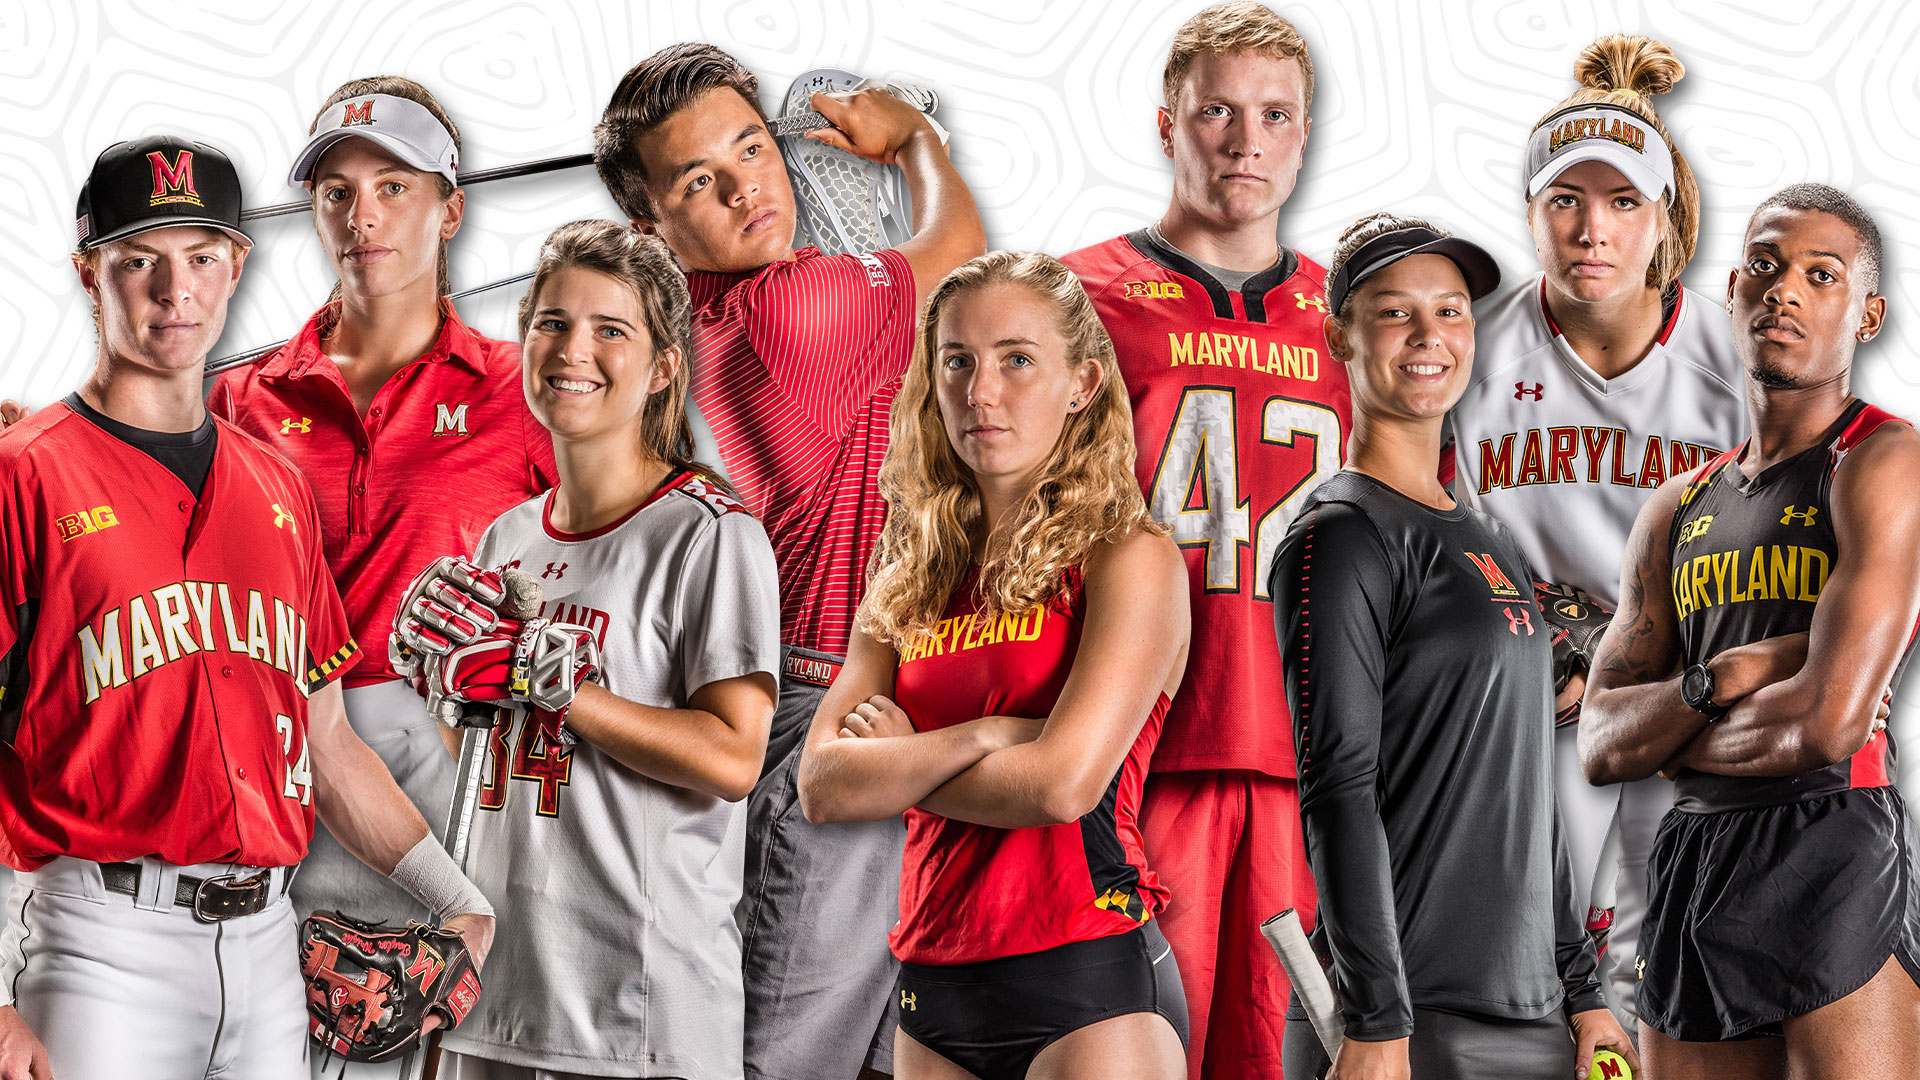 521a8515 University of Maryland Athletics - Official Athletics Website